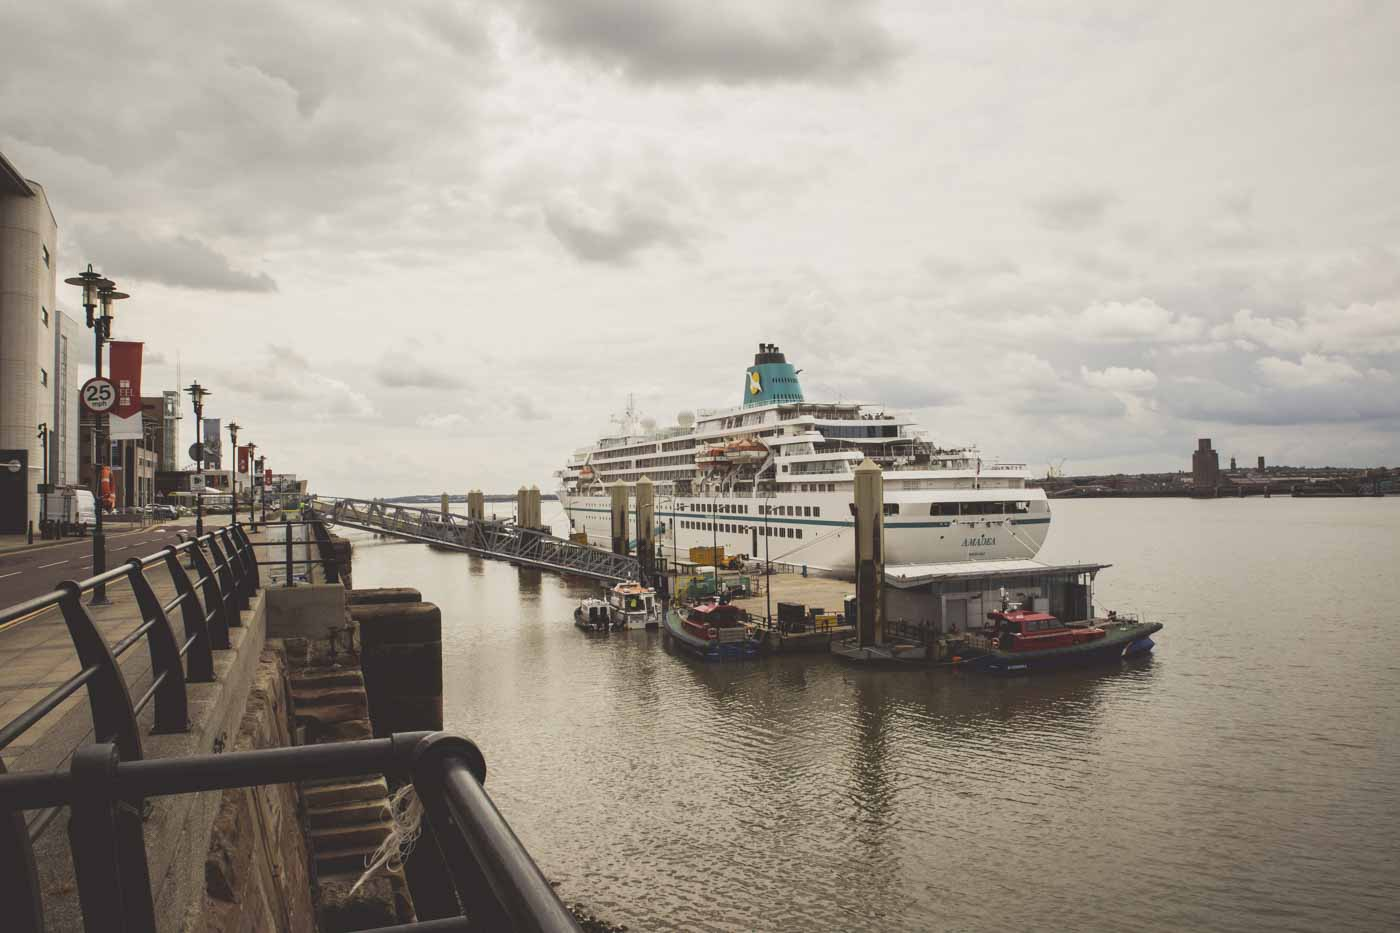 boat, ocean, liverpool, cruise ship, docks